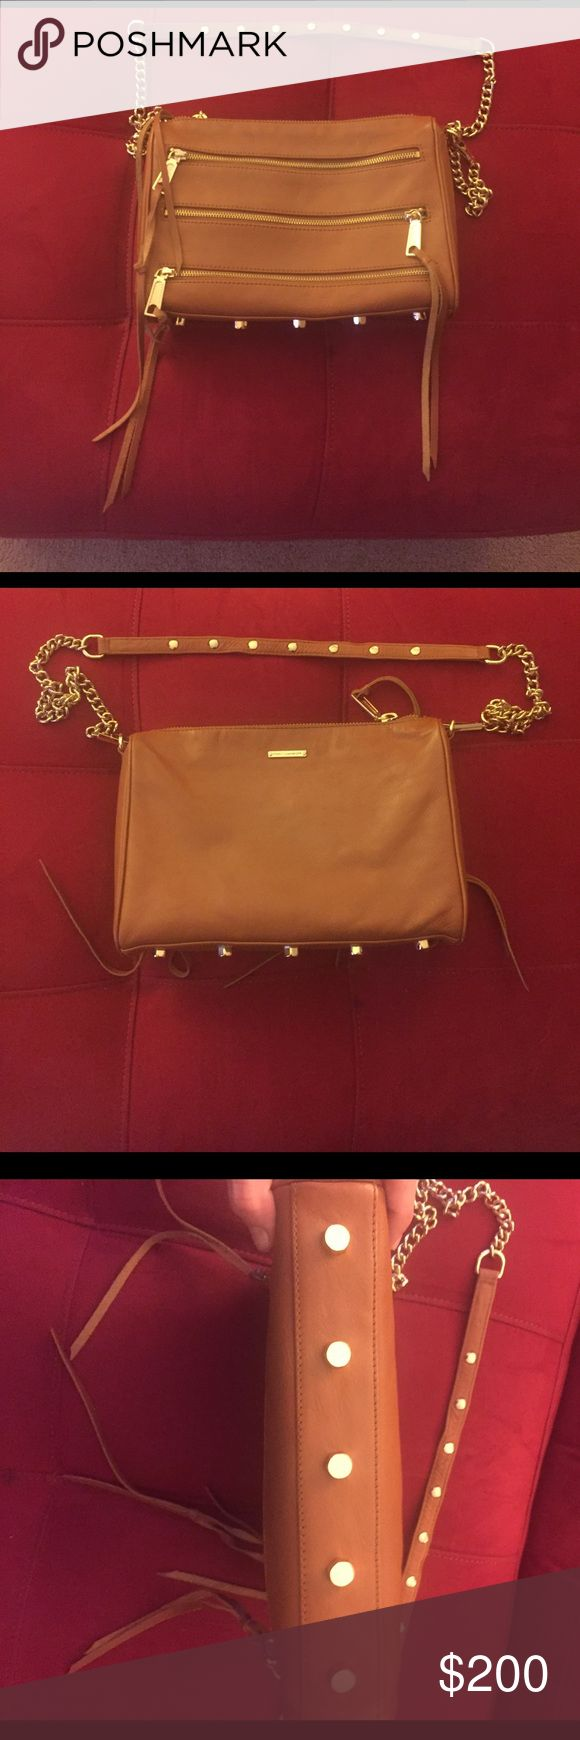 Rebecca Minkoff Full Size 5 Zip Purse Rebecca Minkoff Full Size 5 Zip Purse. Worn/carried only a handful of times - I just wear black all the time. Can be worn on be shoulder or as a crossbody. No trades and price is firm. Rebecca Minkoff Bags